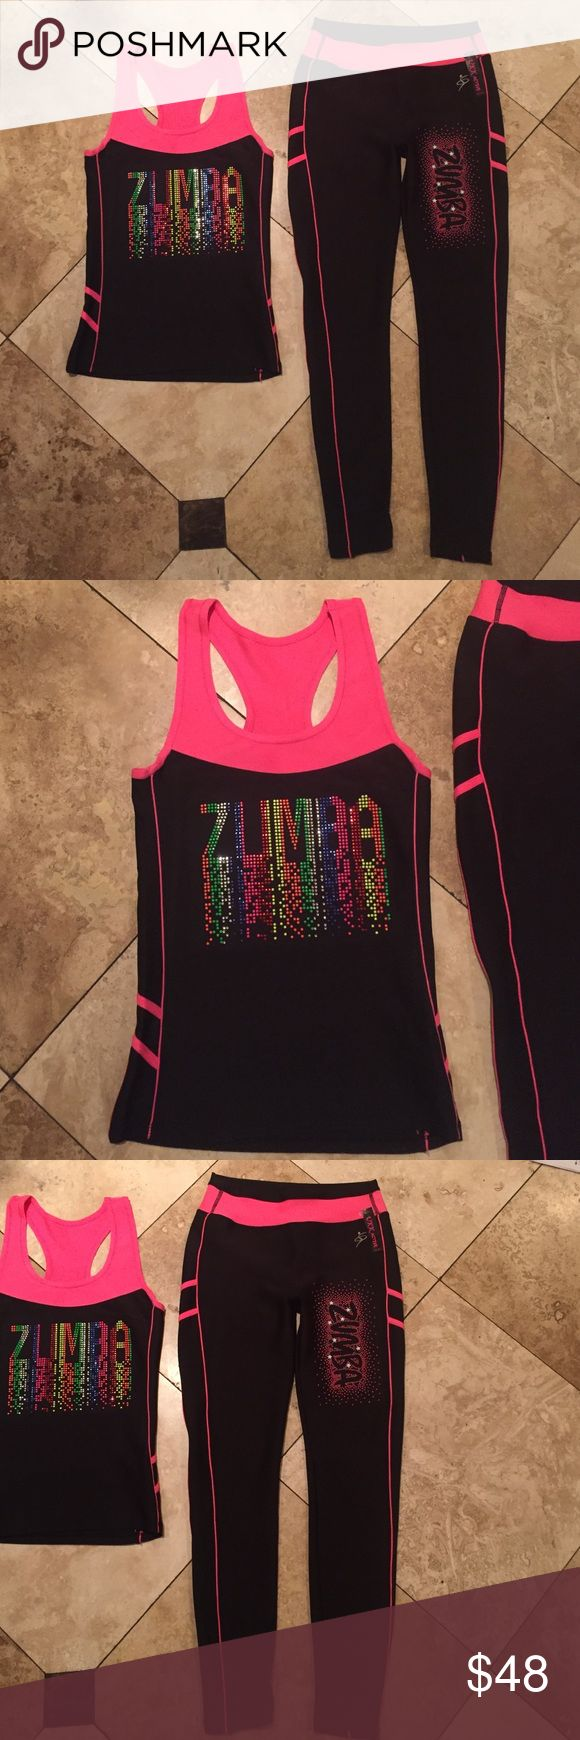 Zumba outfit New size large/Xlarge material is 92% nylon 8% spandex Other